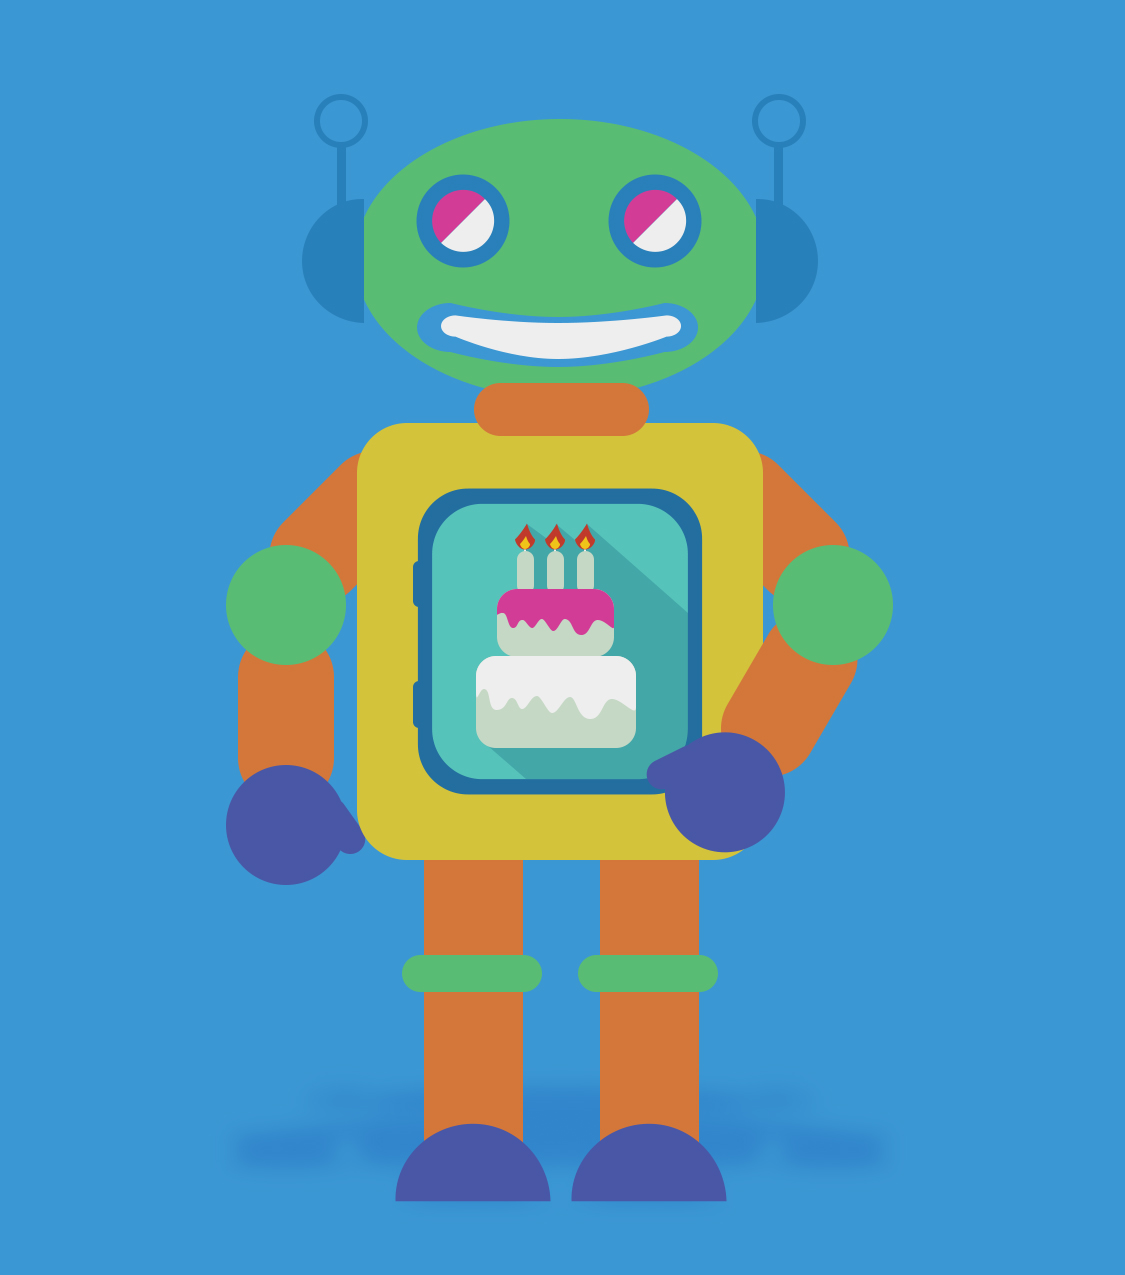 Robot Party Birthday Card: Vector